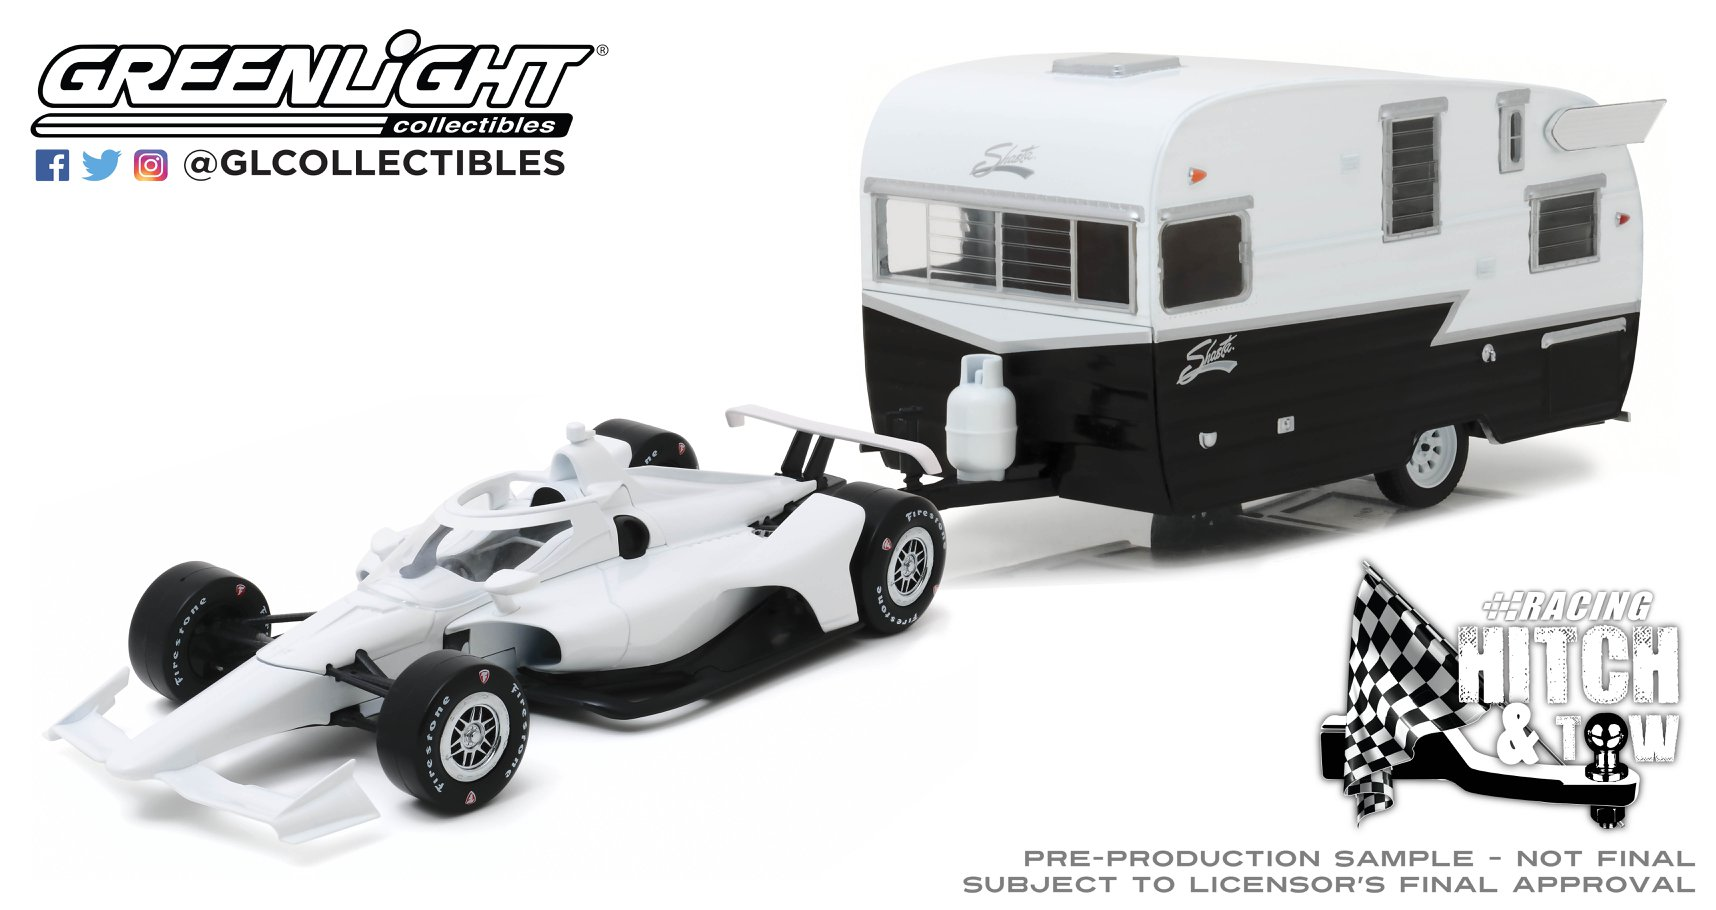 Greenlight Indycar caravane